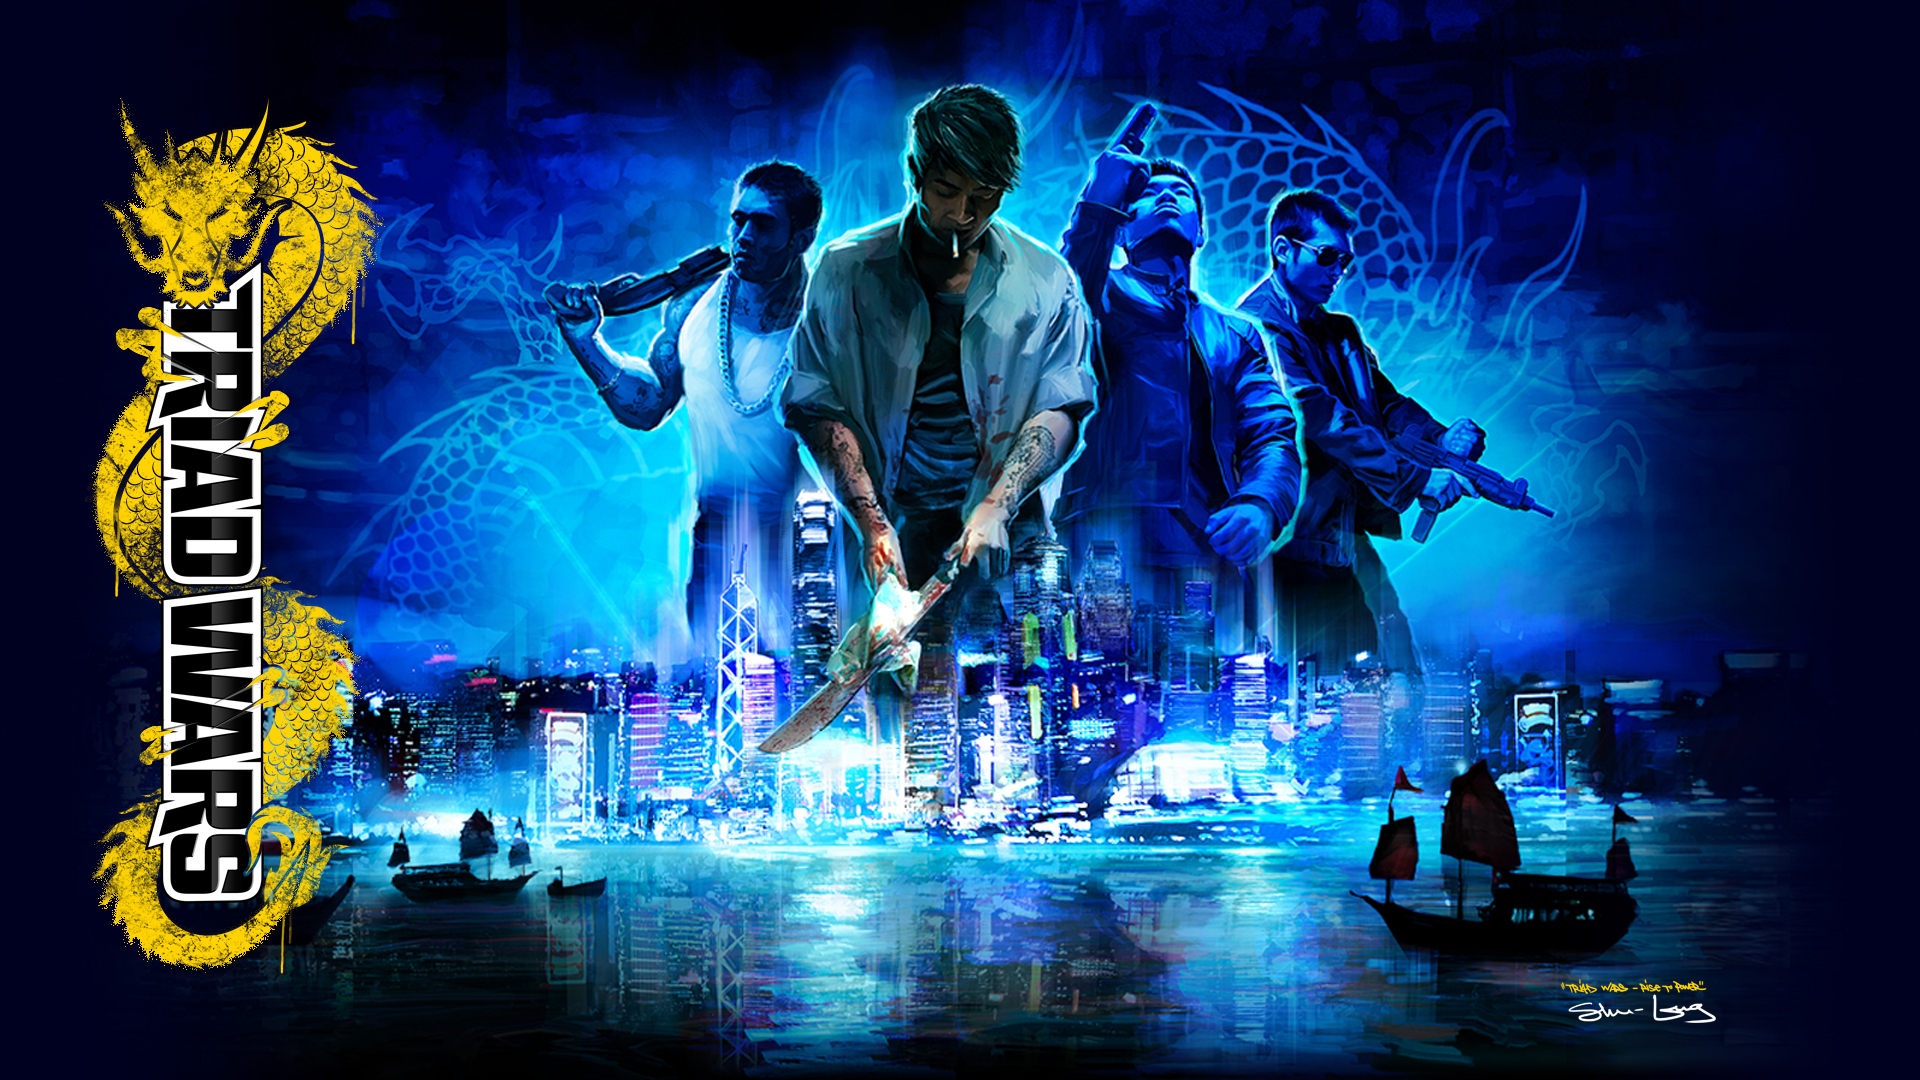 Triad Wars Artwork